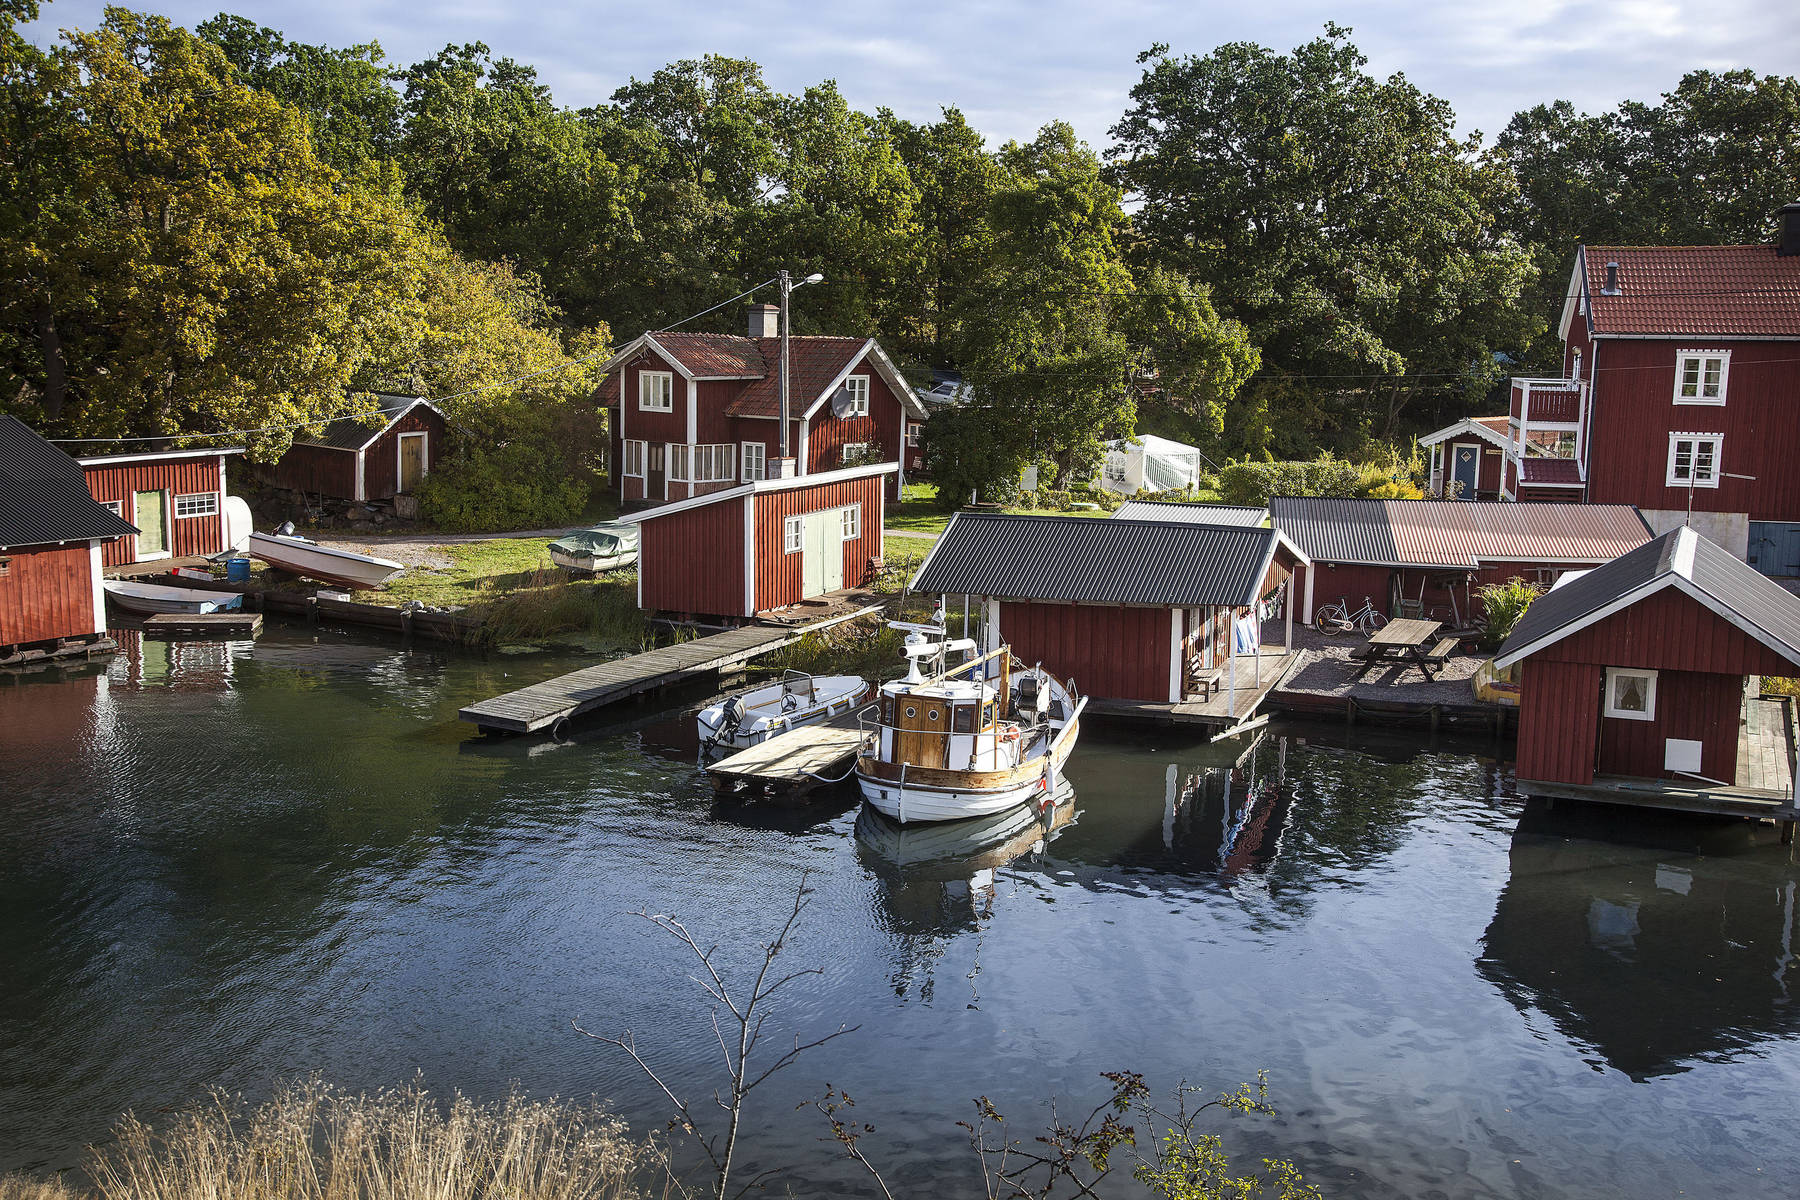 Red cottages in the archipelago